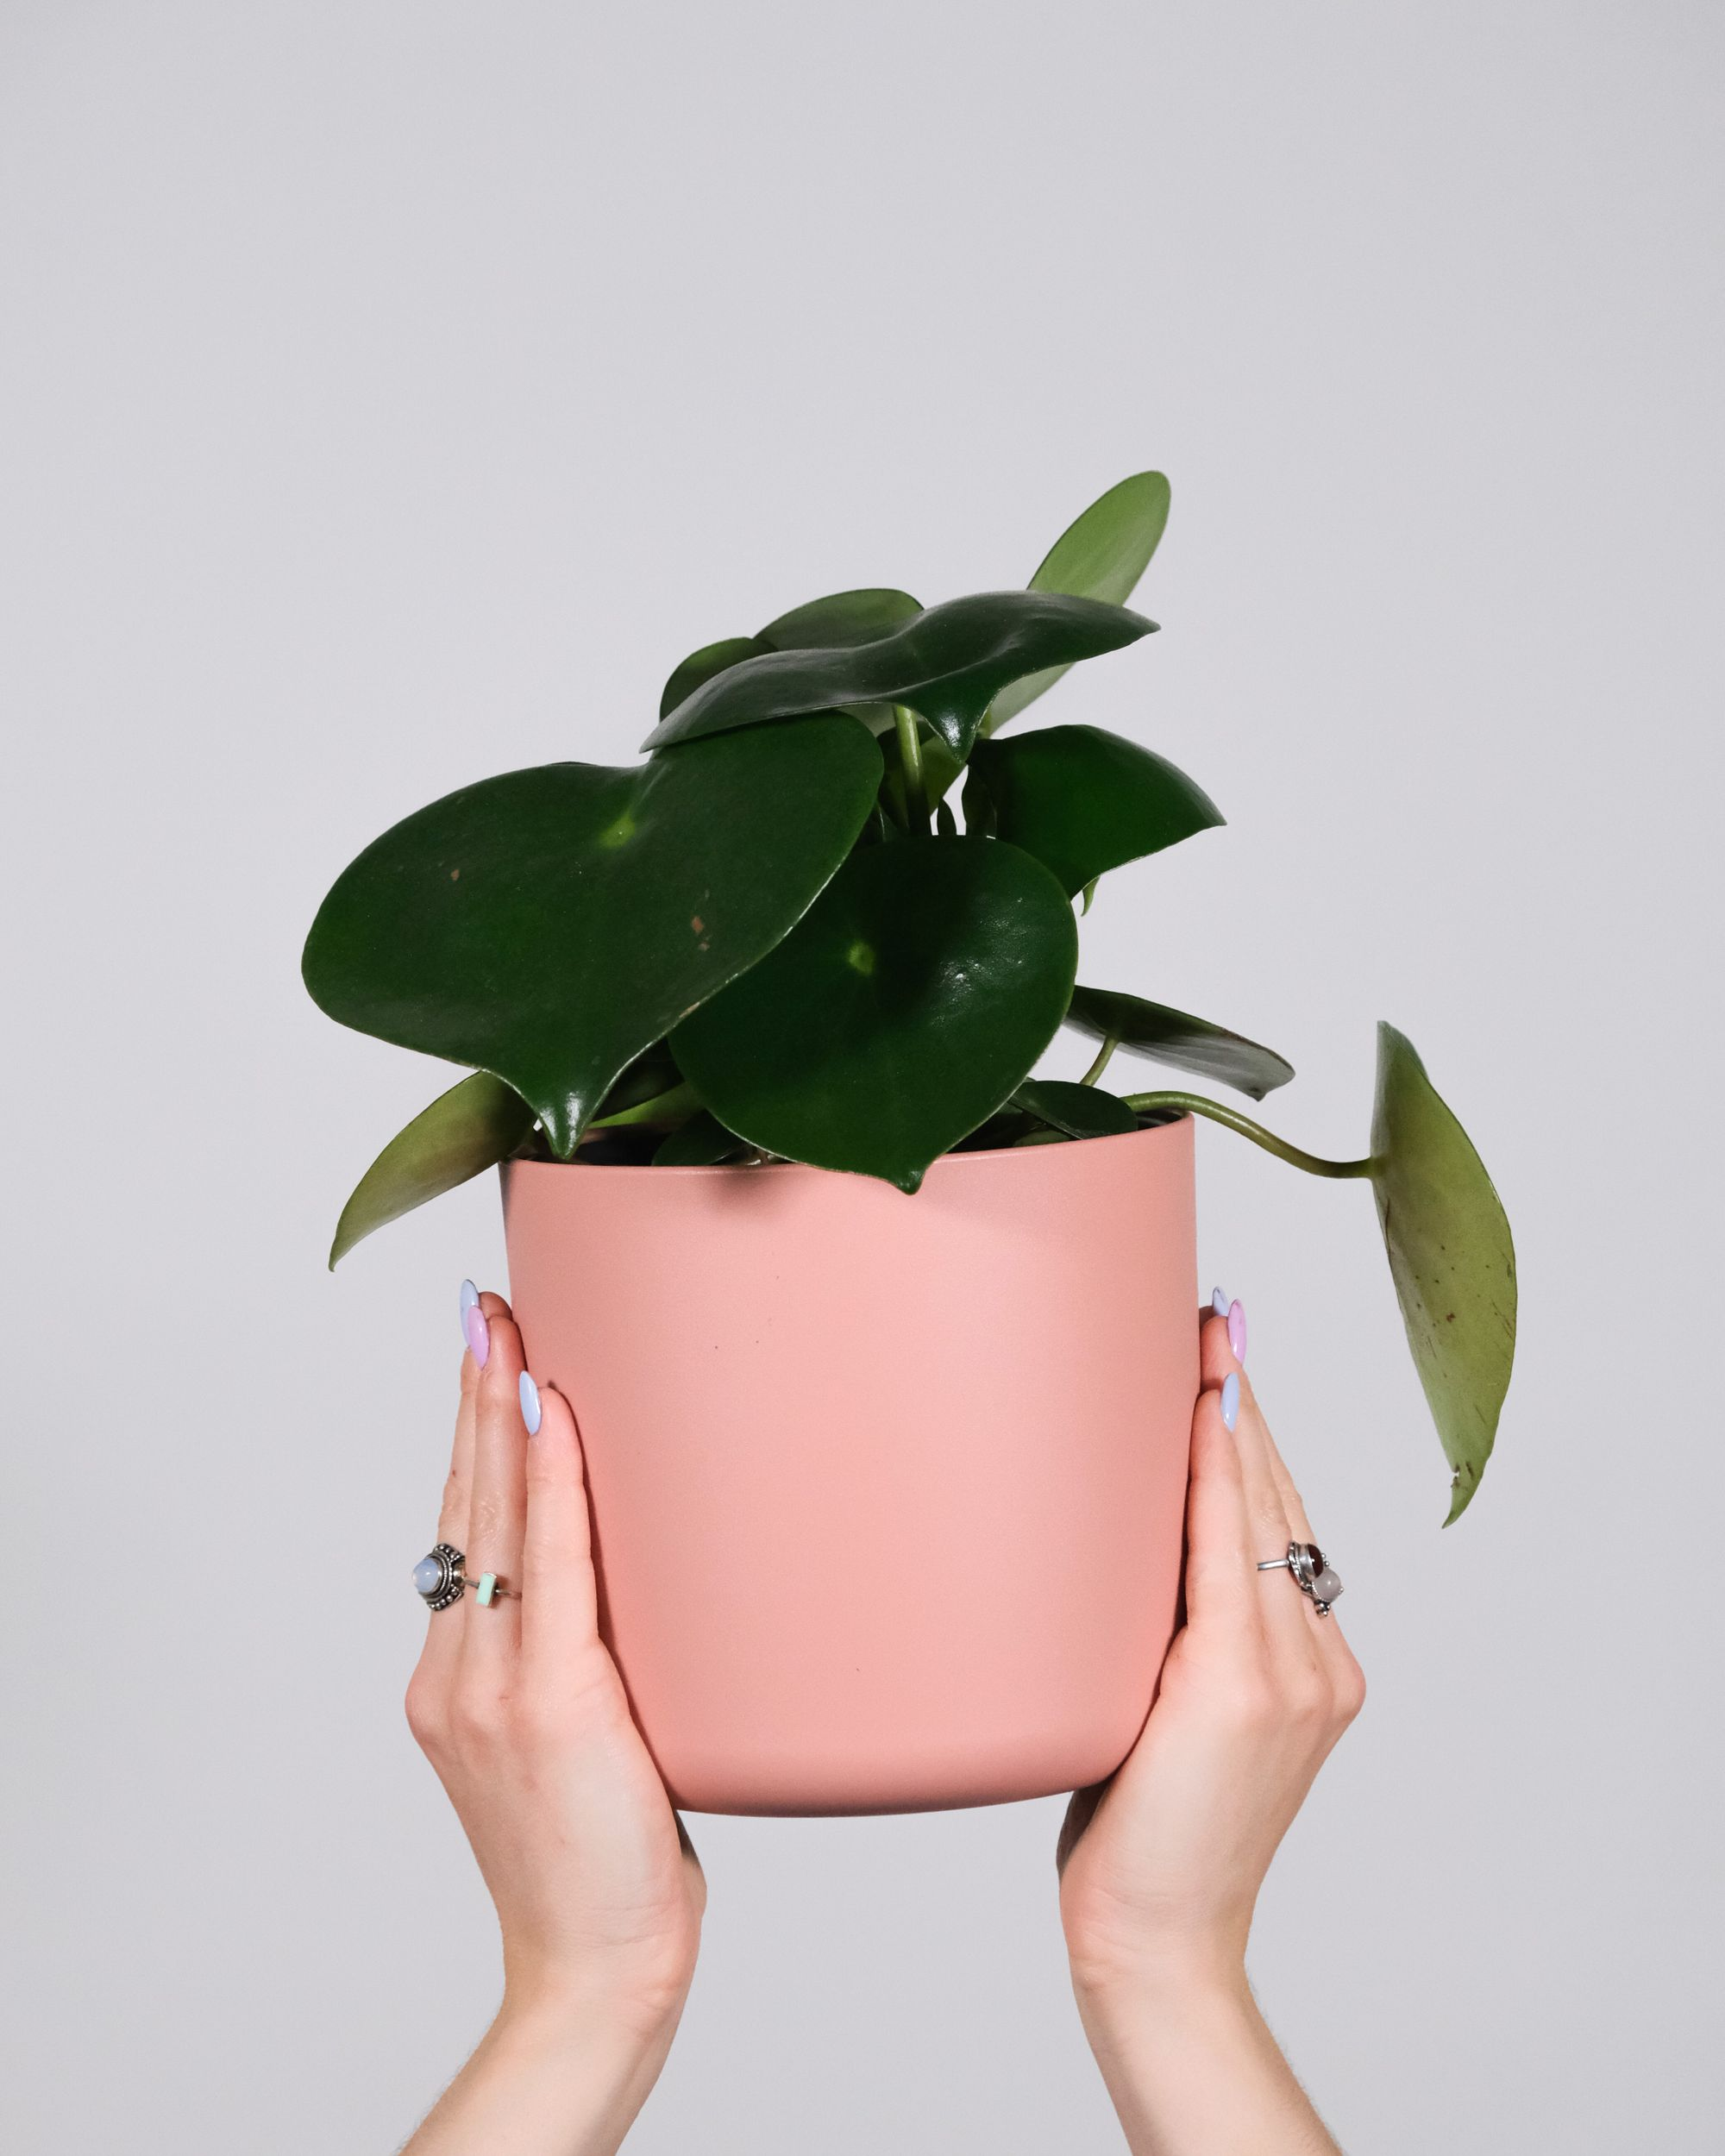 Unkillabel low-light plants for a windowless home office — peperomia